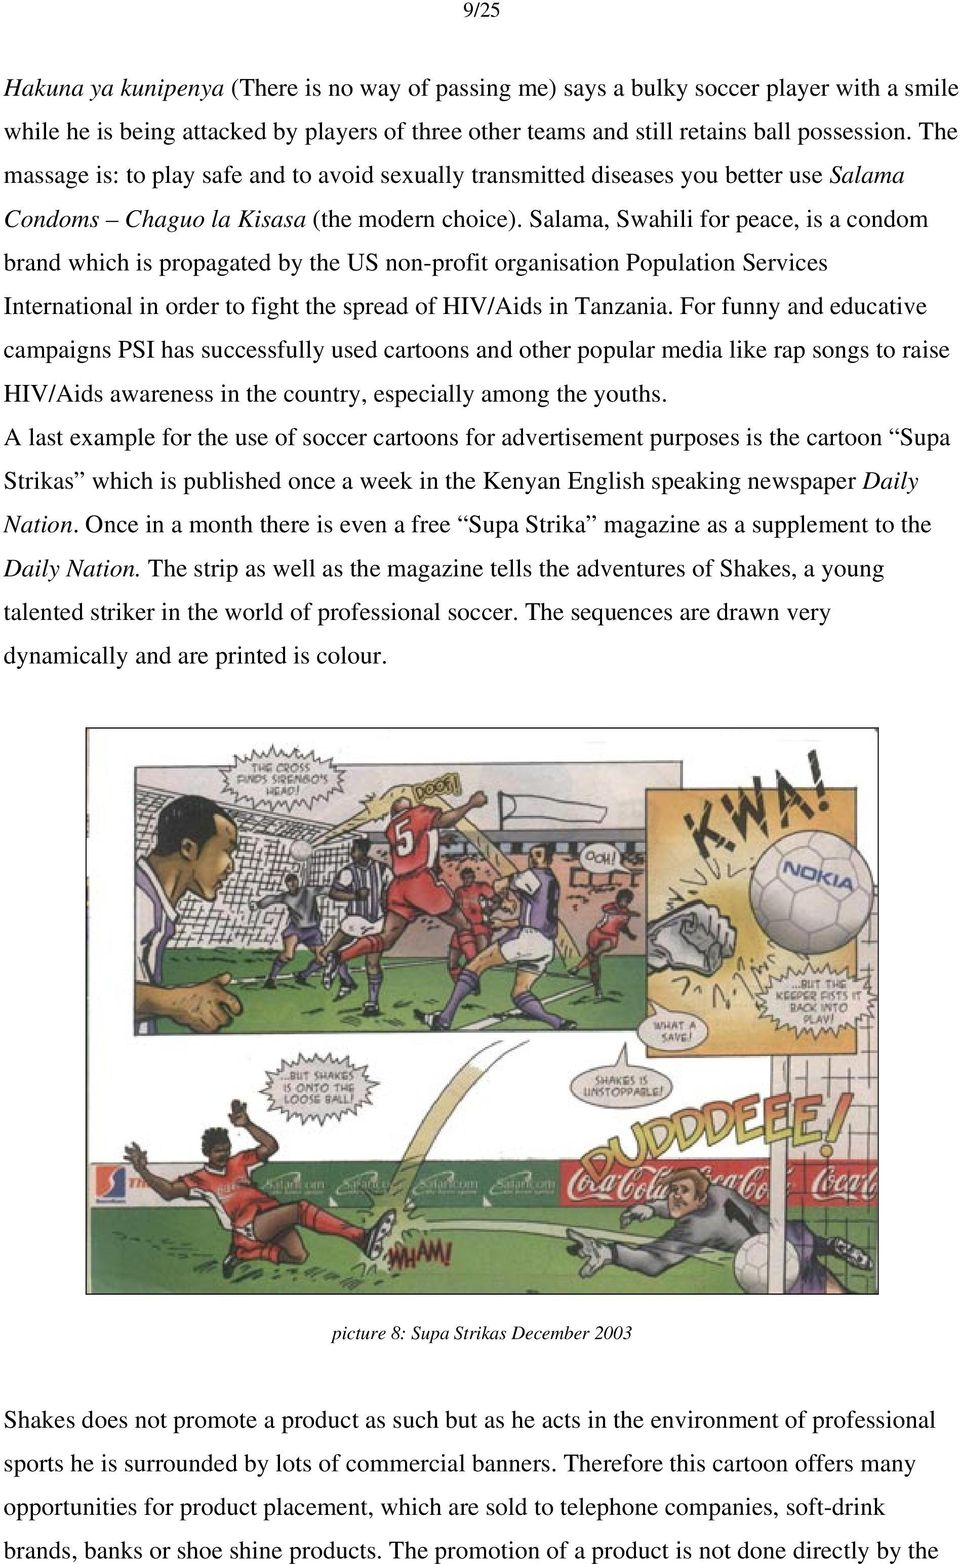 Winners, cheats and witches: East African soccer cartoons Beez